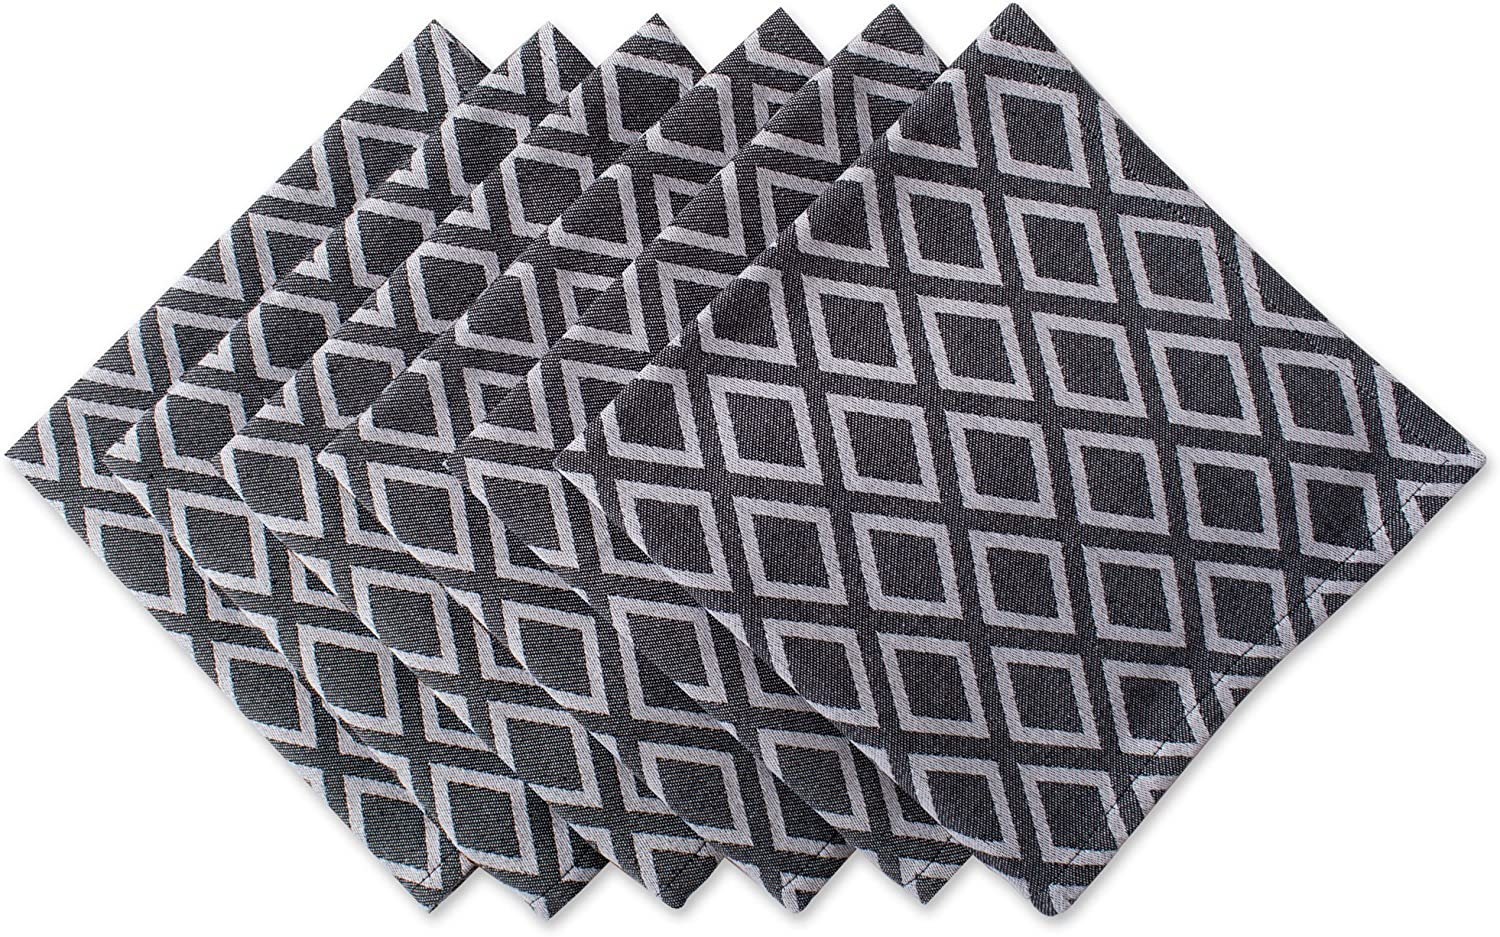 Amazon Com Dii Oversized 20x20 Cotton Napkin Pack Of 6 Black And White Diamond Perfect For Special Occasions Modern Décor Catering Events Or Everyday Use Home Kitchen